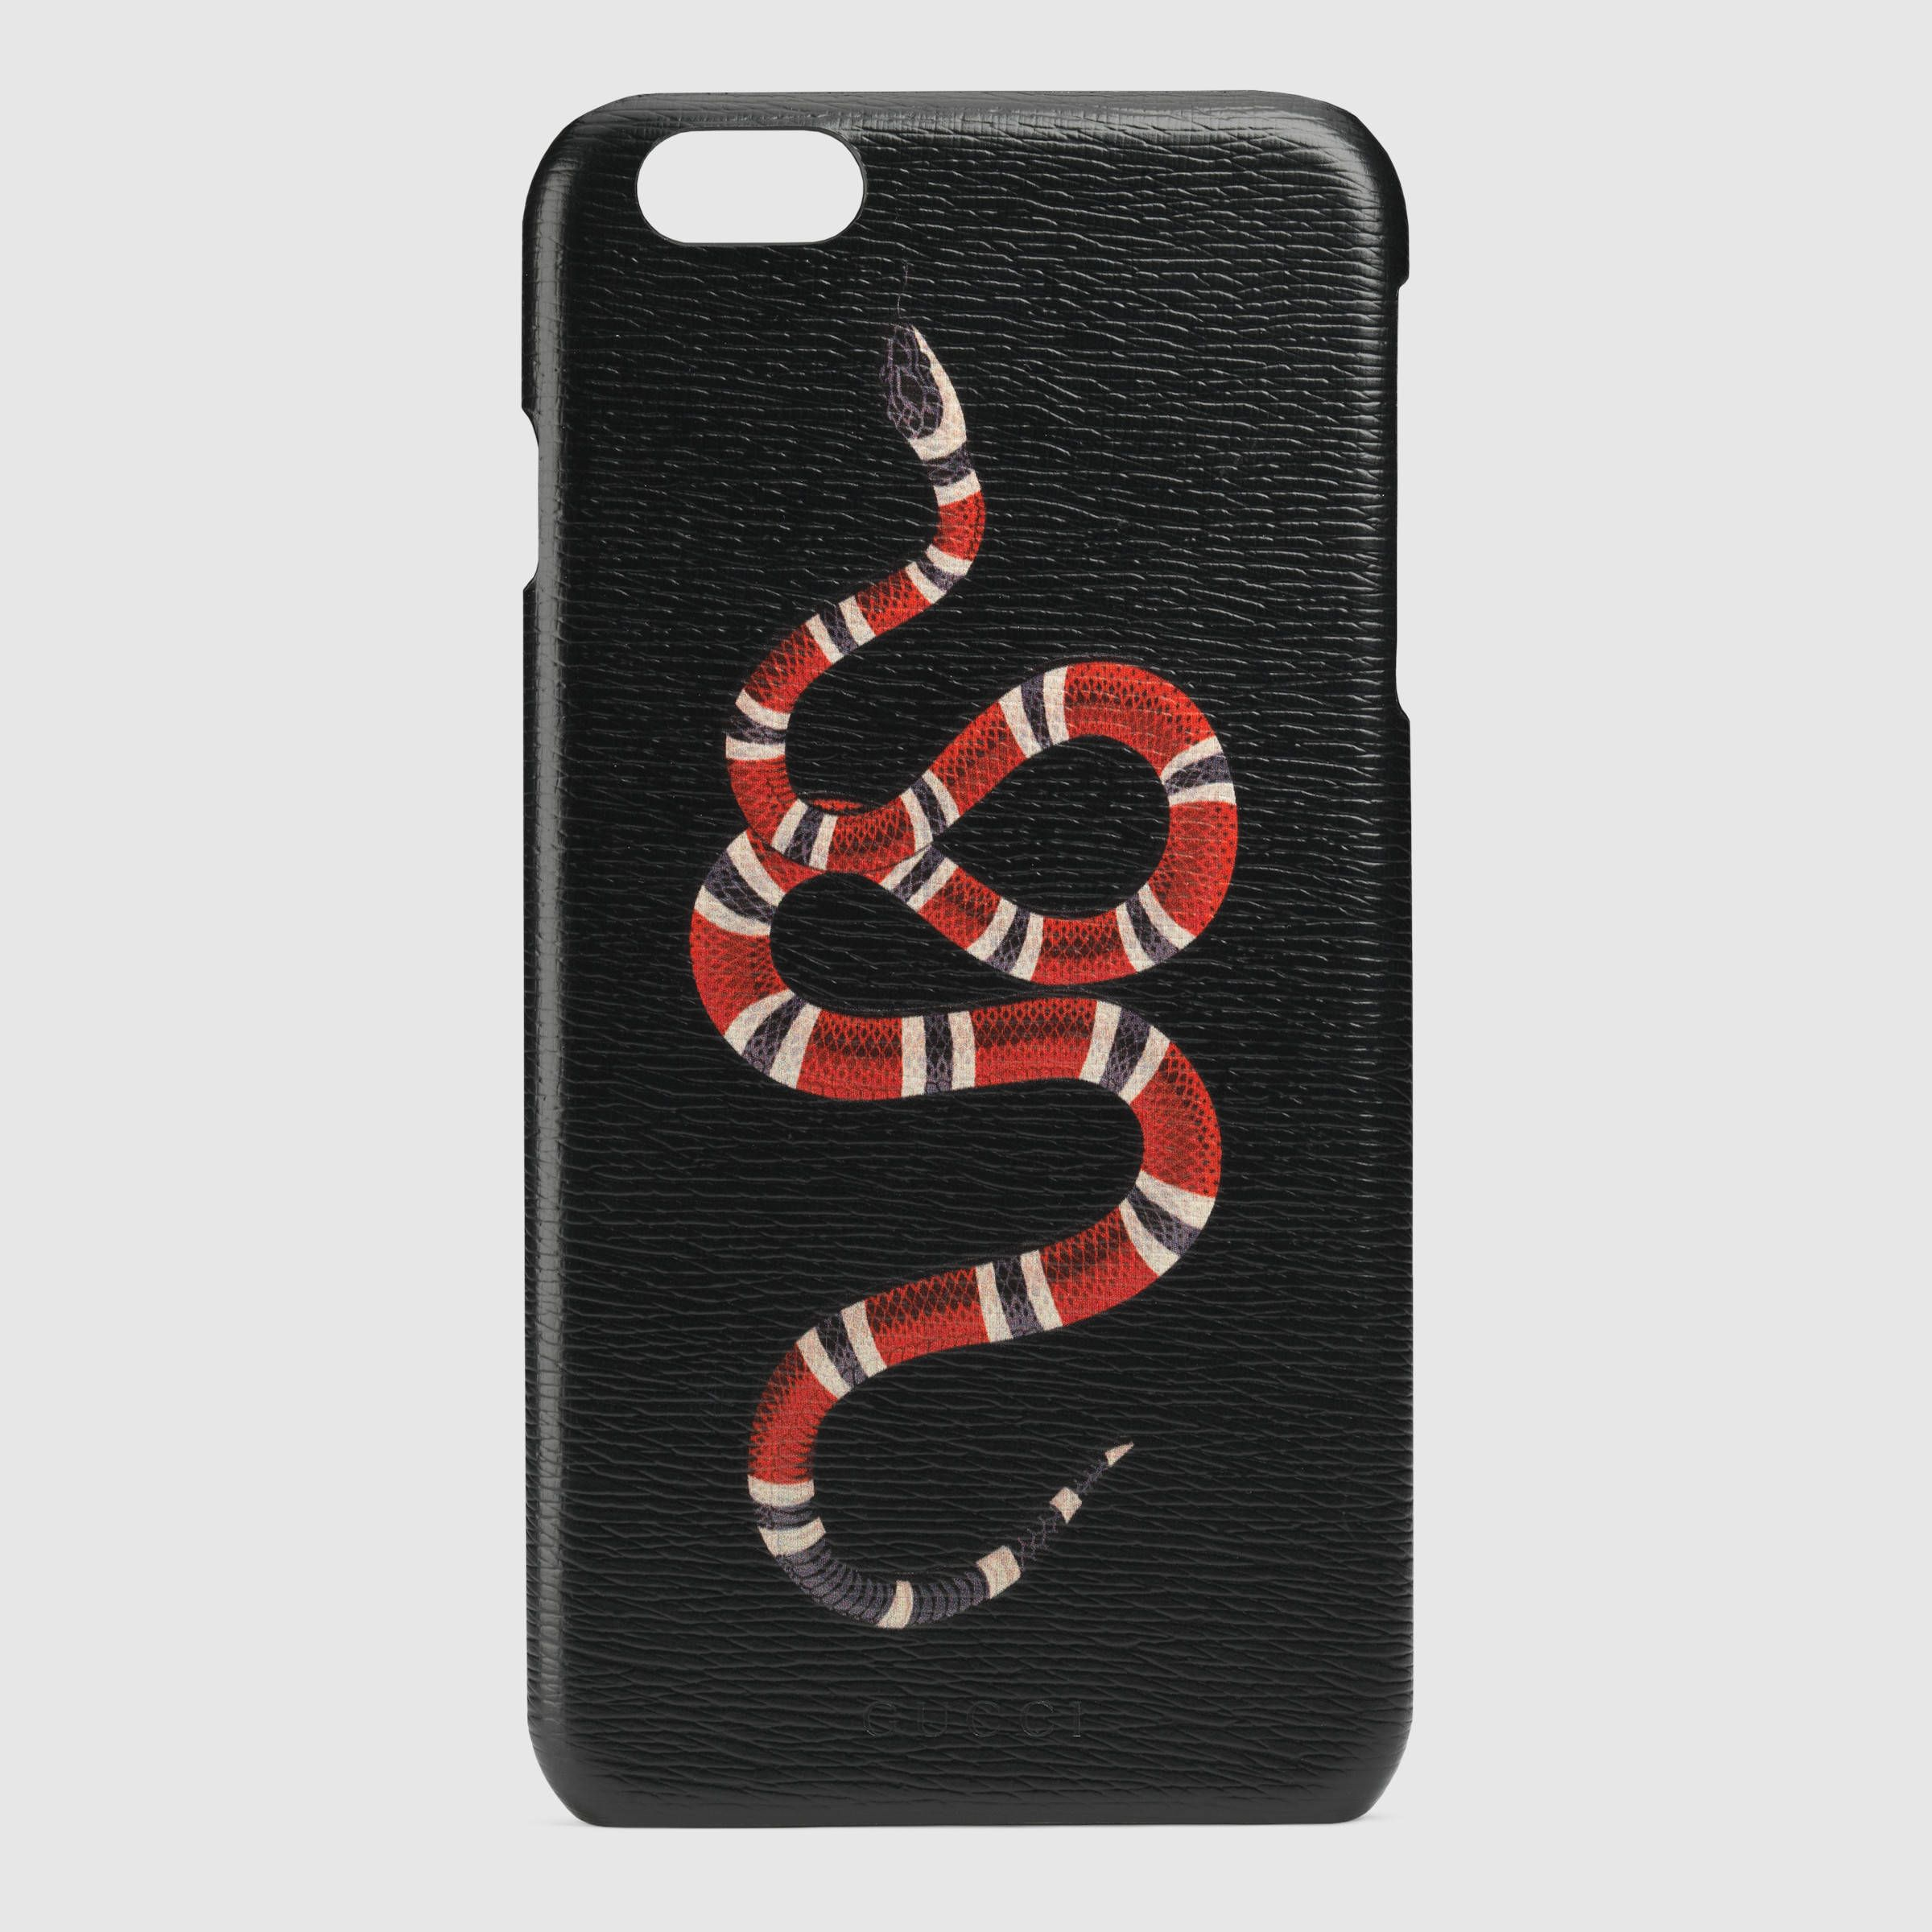 huge discount f2ee5 78891 Snake print iPhone 6 Plus case | Accessories | Taehyung gucci, Mens ...